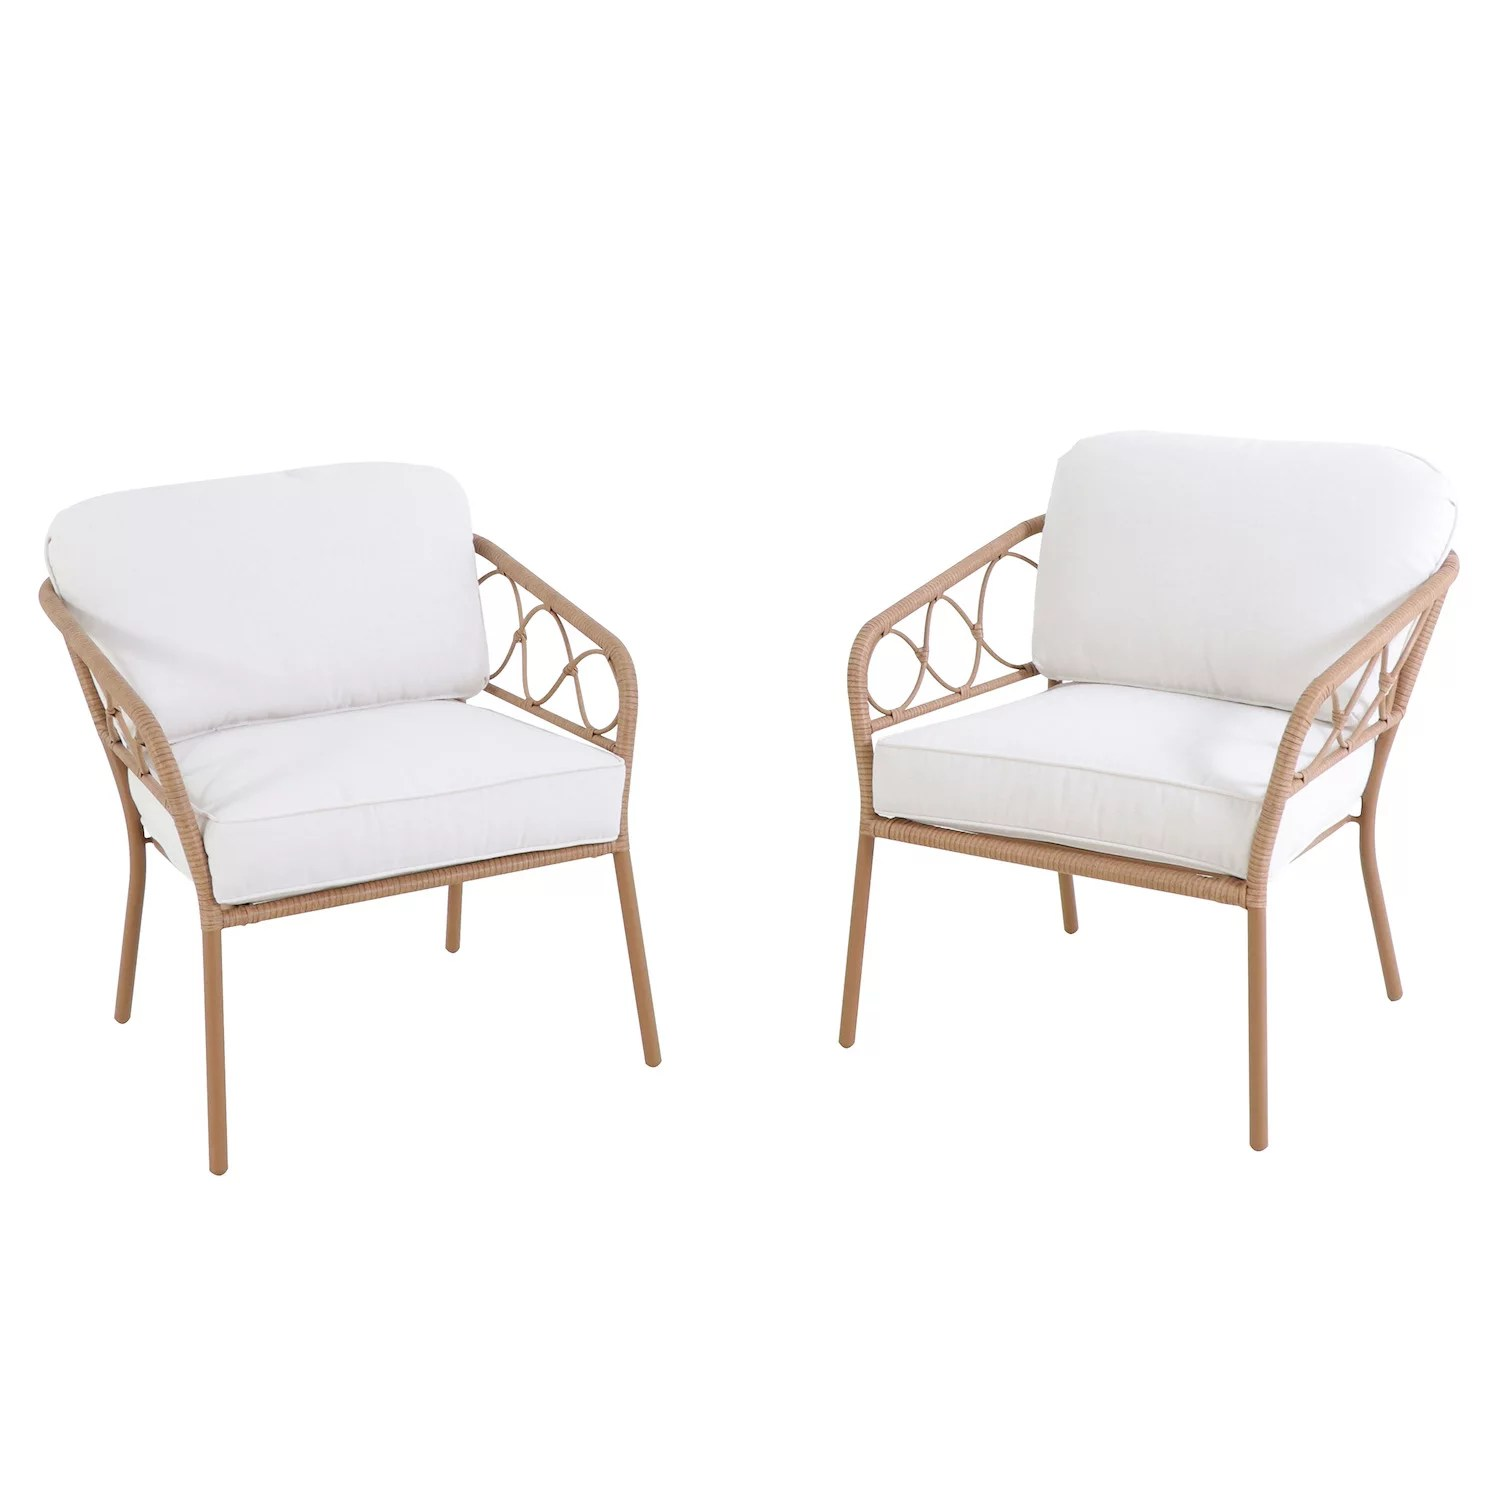 sonoma goods for life tramonto wicker patio chair 2 piece set